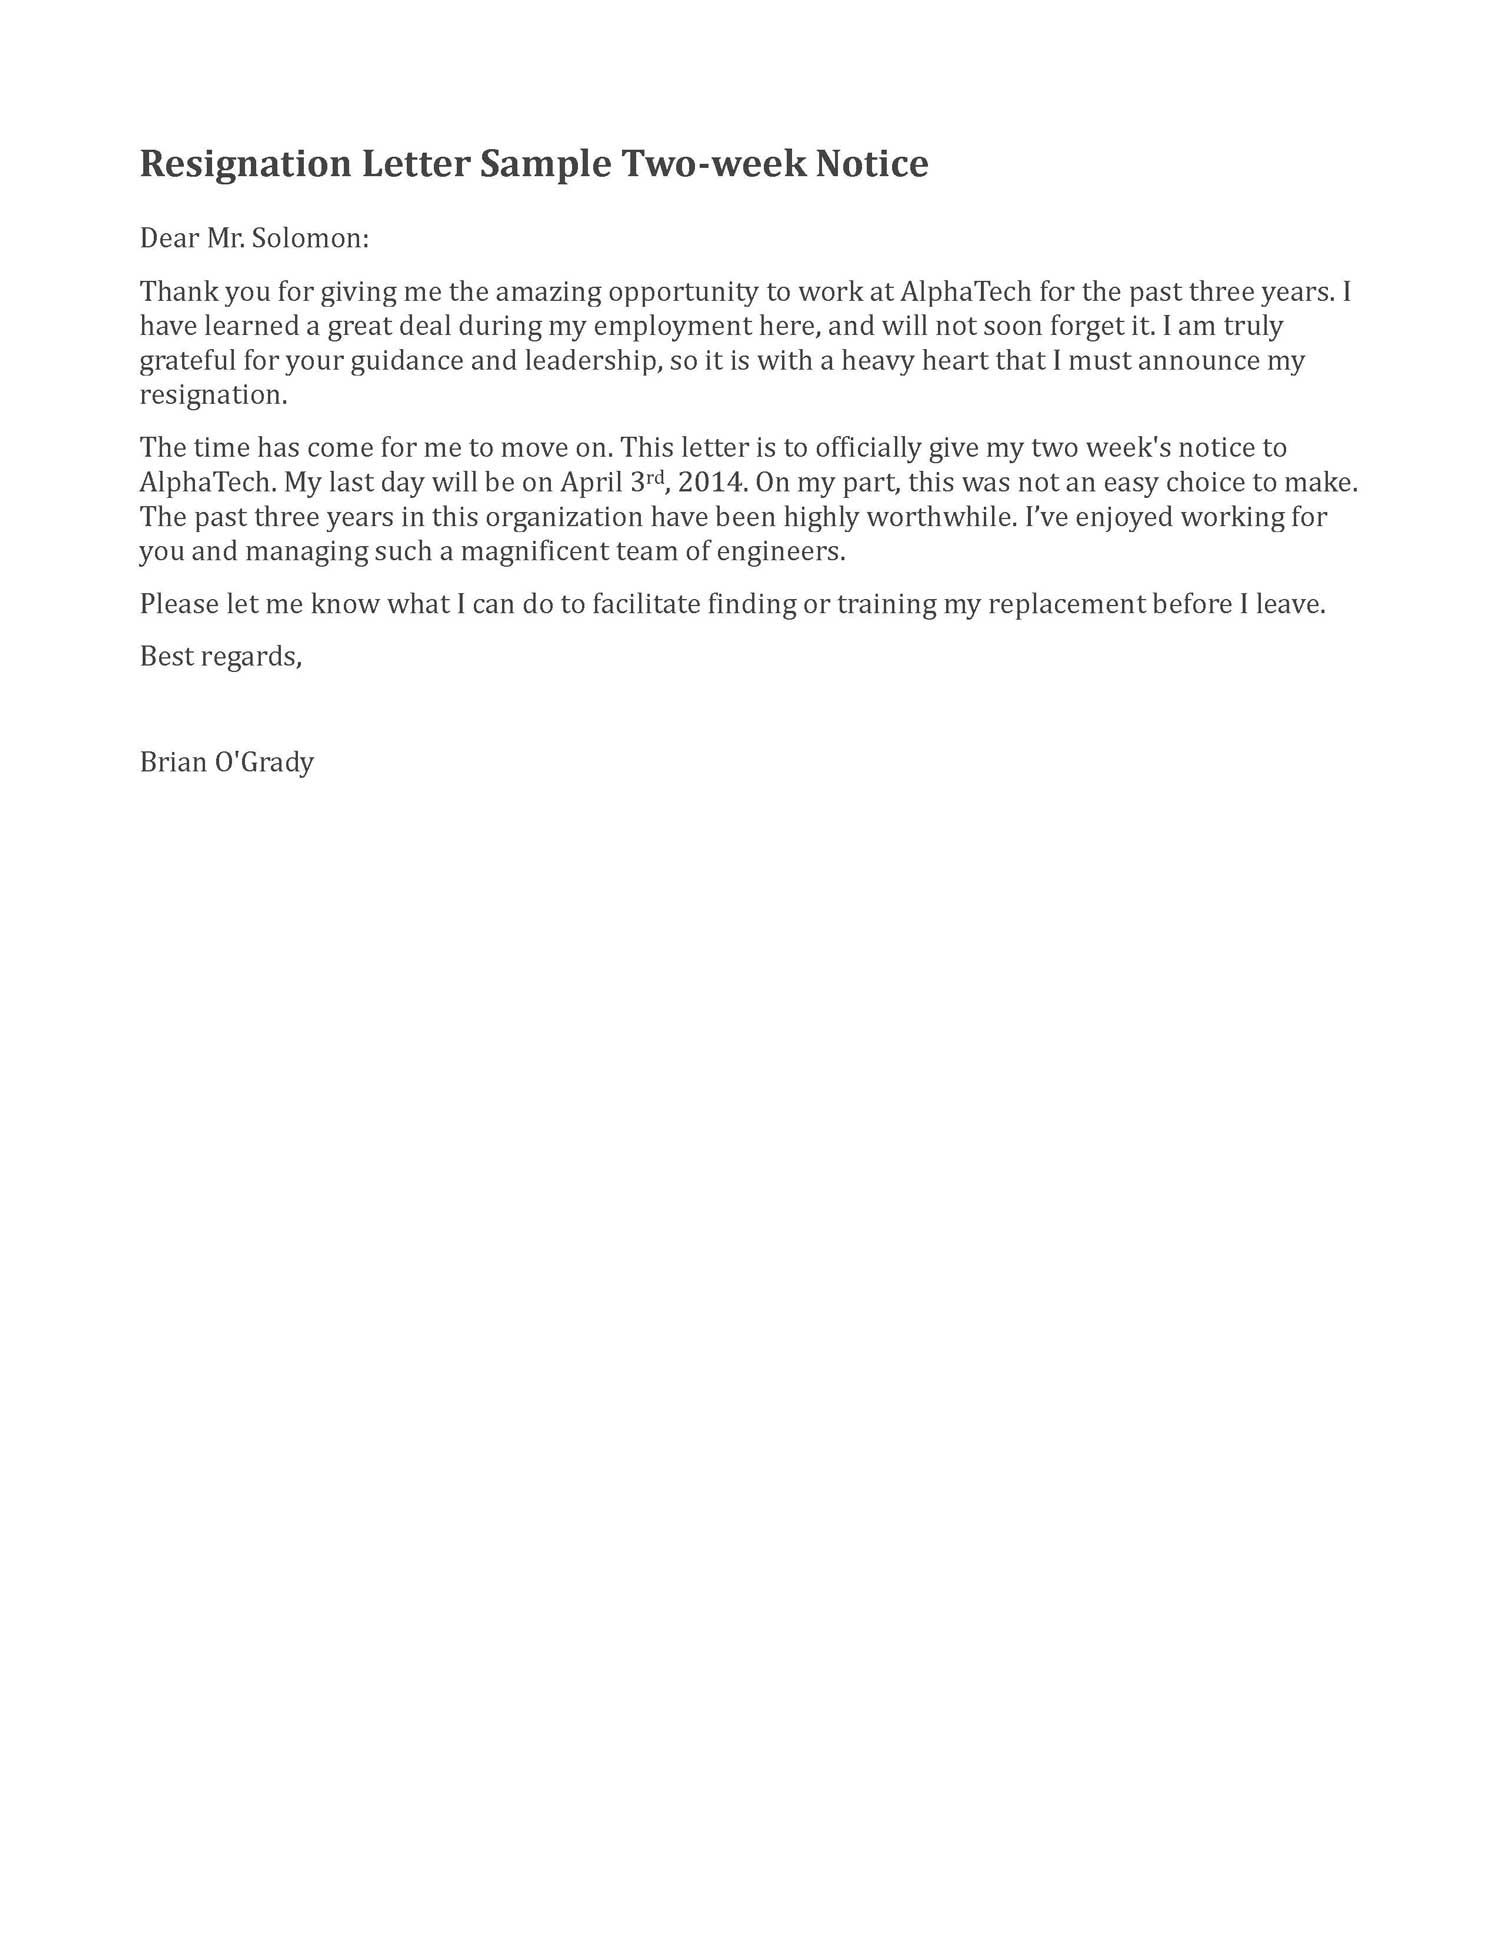 resignation letter sample 2 weeks notice   Google Search